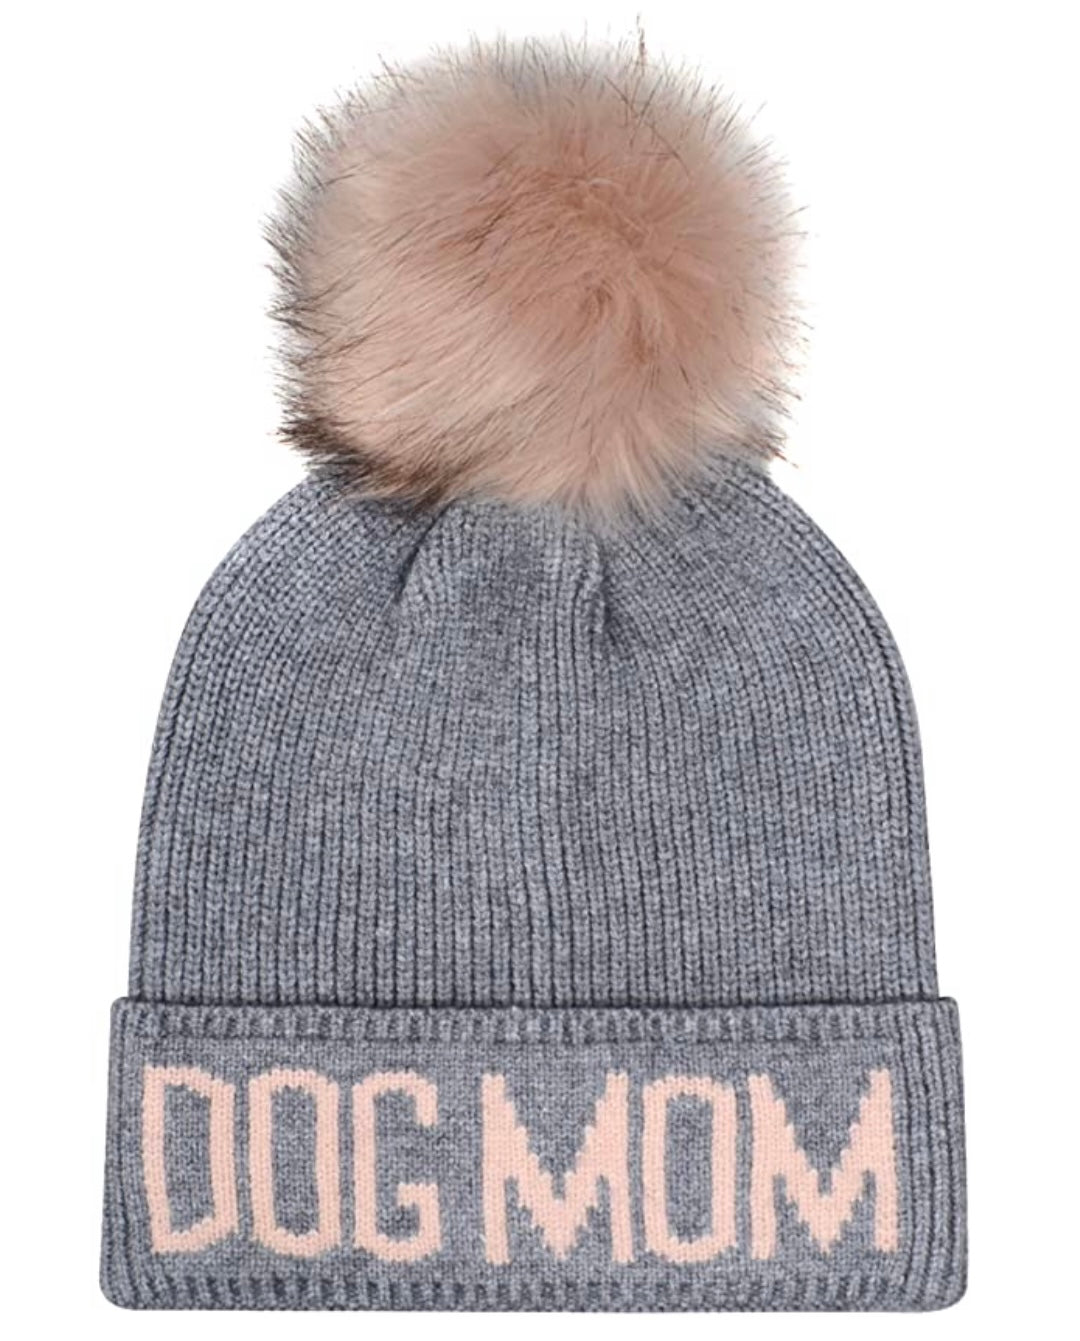 DOG MOM - GREY/PINK